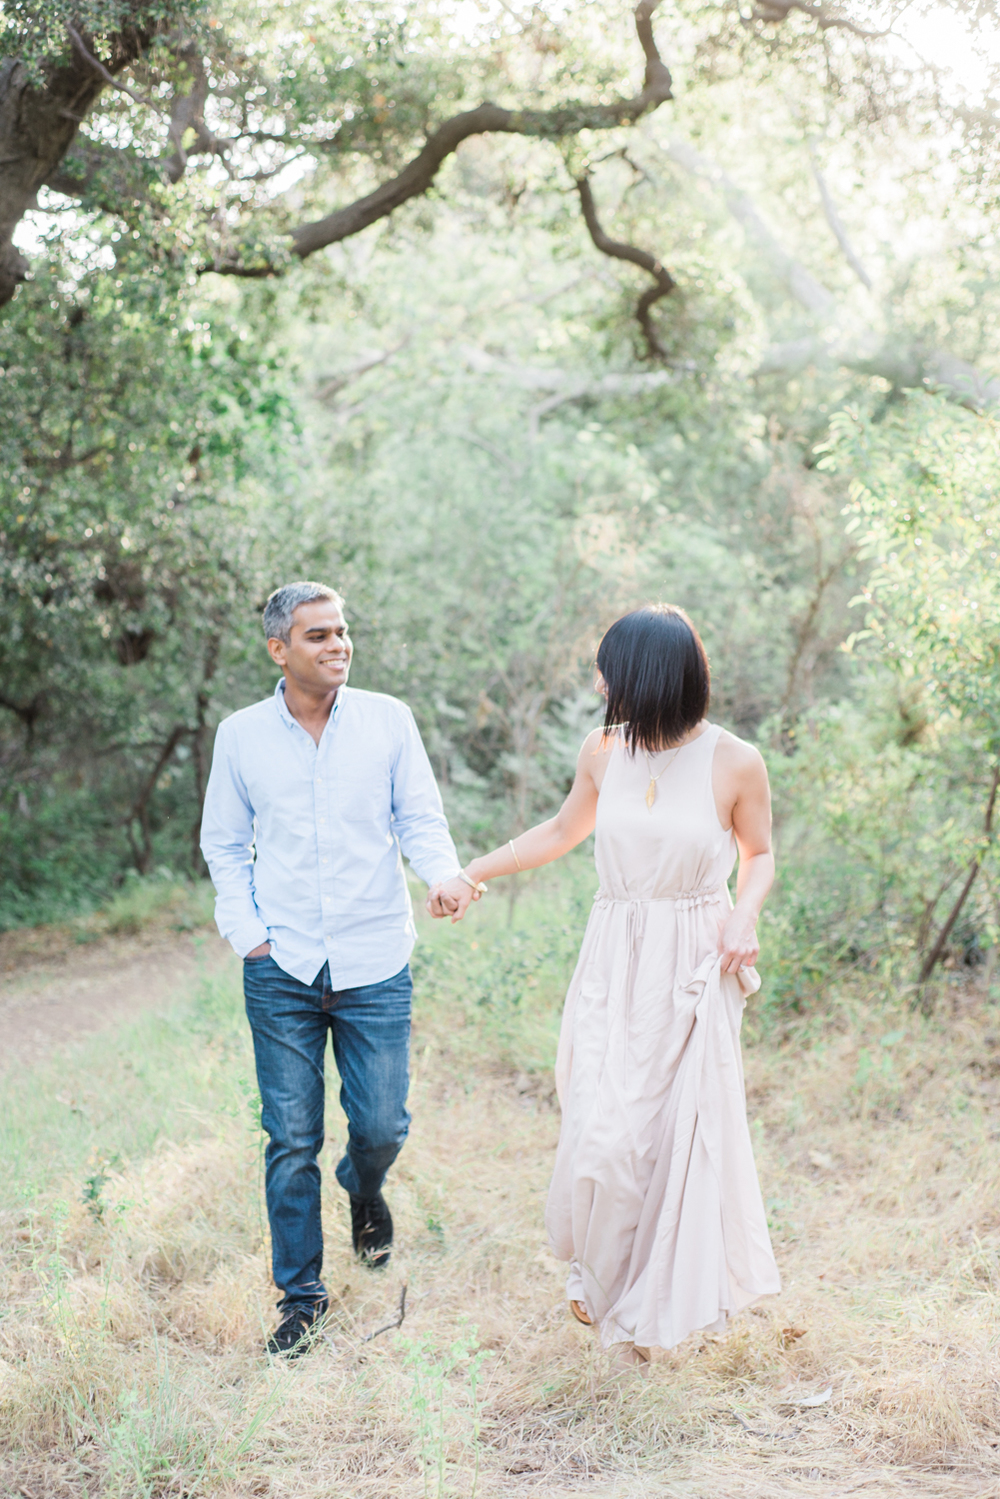 tina&sahil_solstice_canyon_engagement_session_photography_los_angeles_wedding_photographer-4.jpg